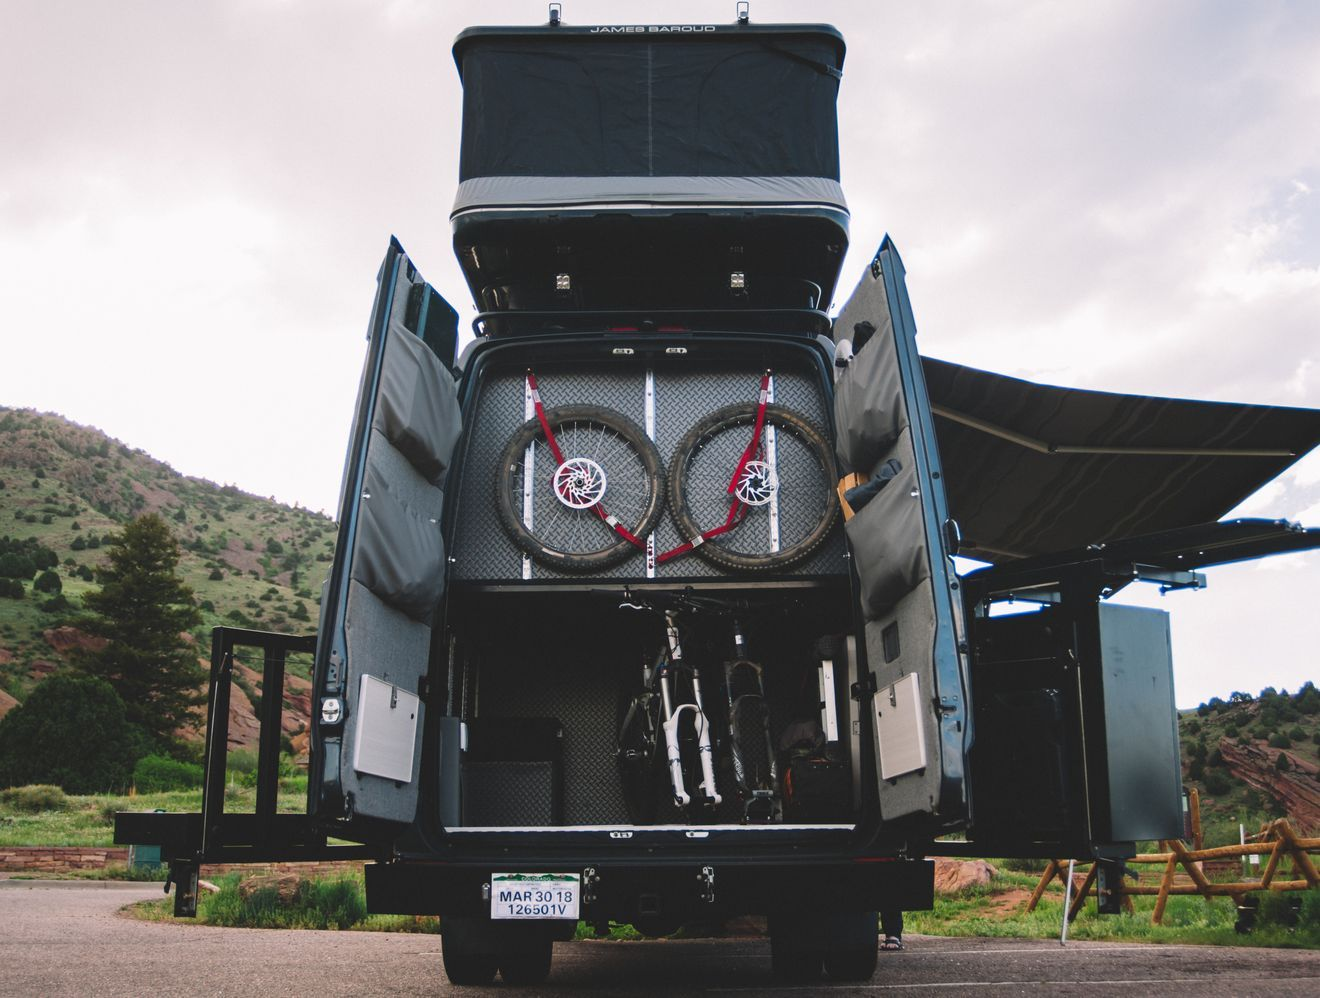 This Custom Camper Van Can Sleep A Family Of 6 Custom Camper Vans Custom Campers Camper Van